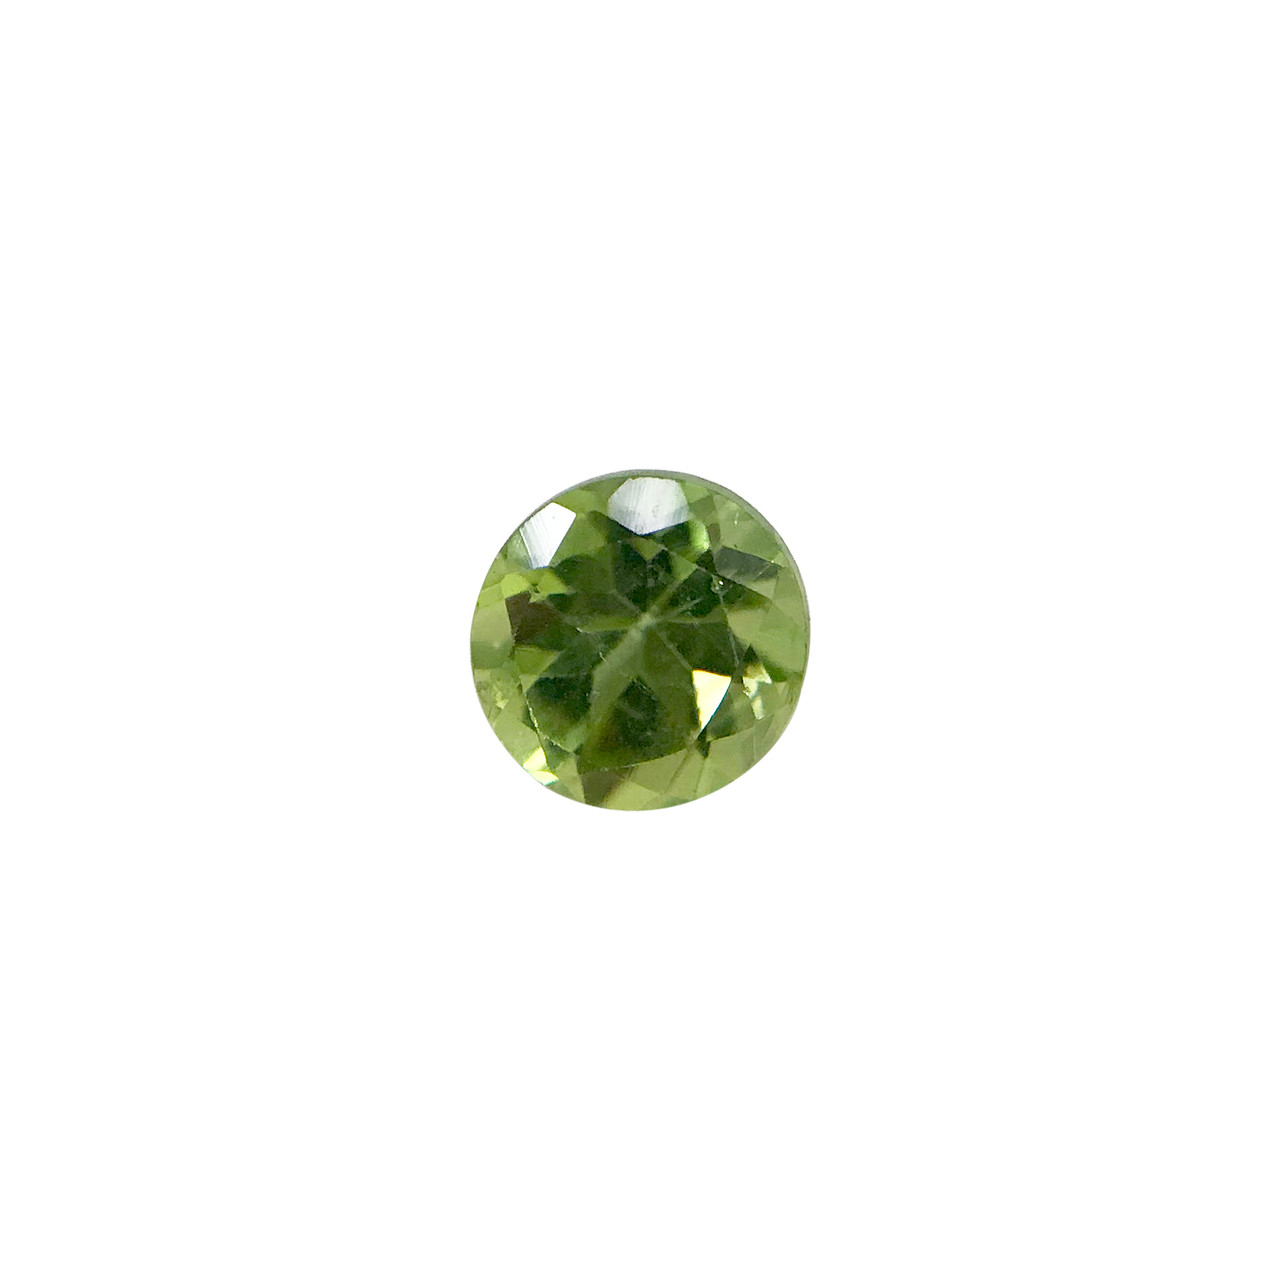 Round Genuine Natural Peridot Faceted Gemstone